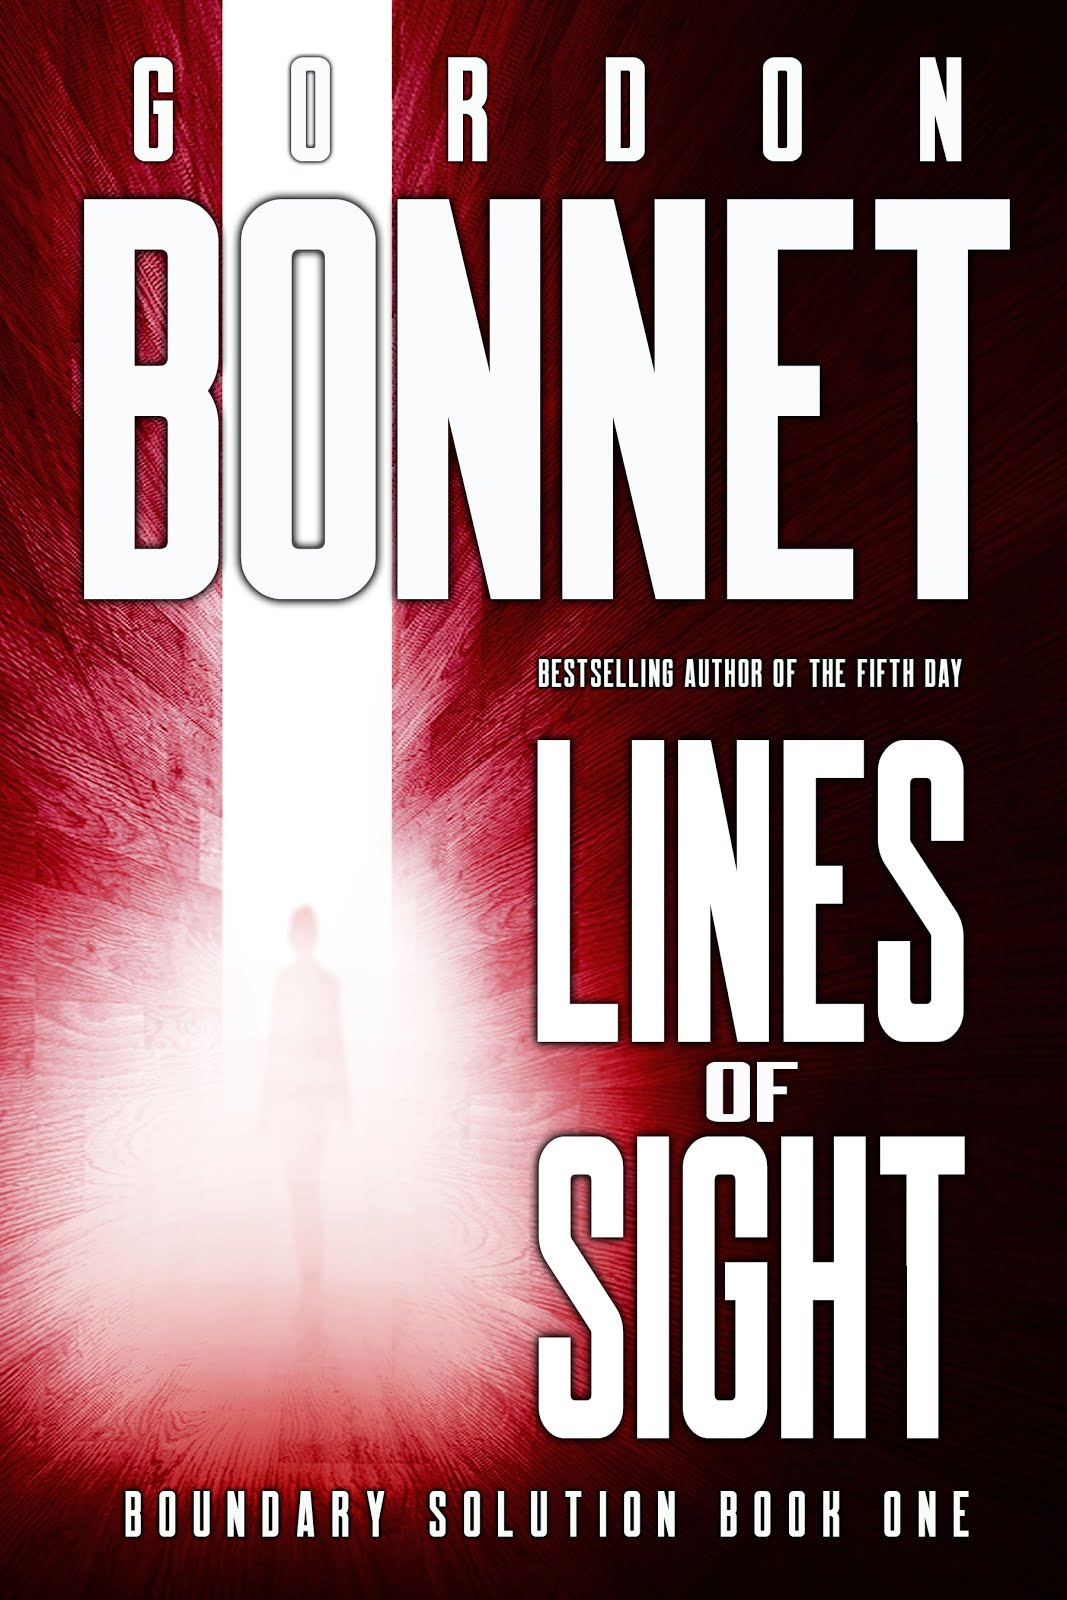 NEW RELEASE! Book #1 of the Boundary Solution